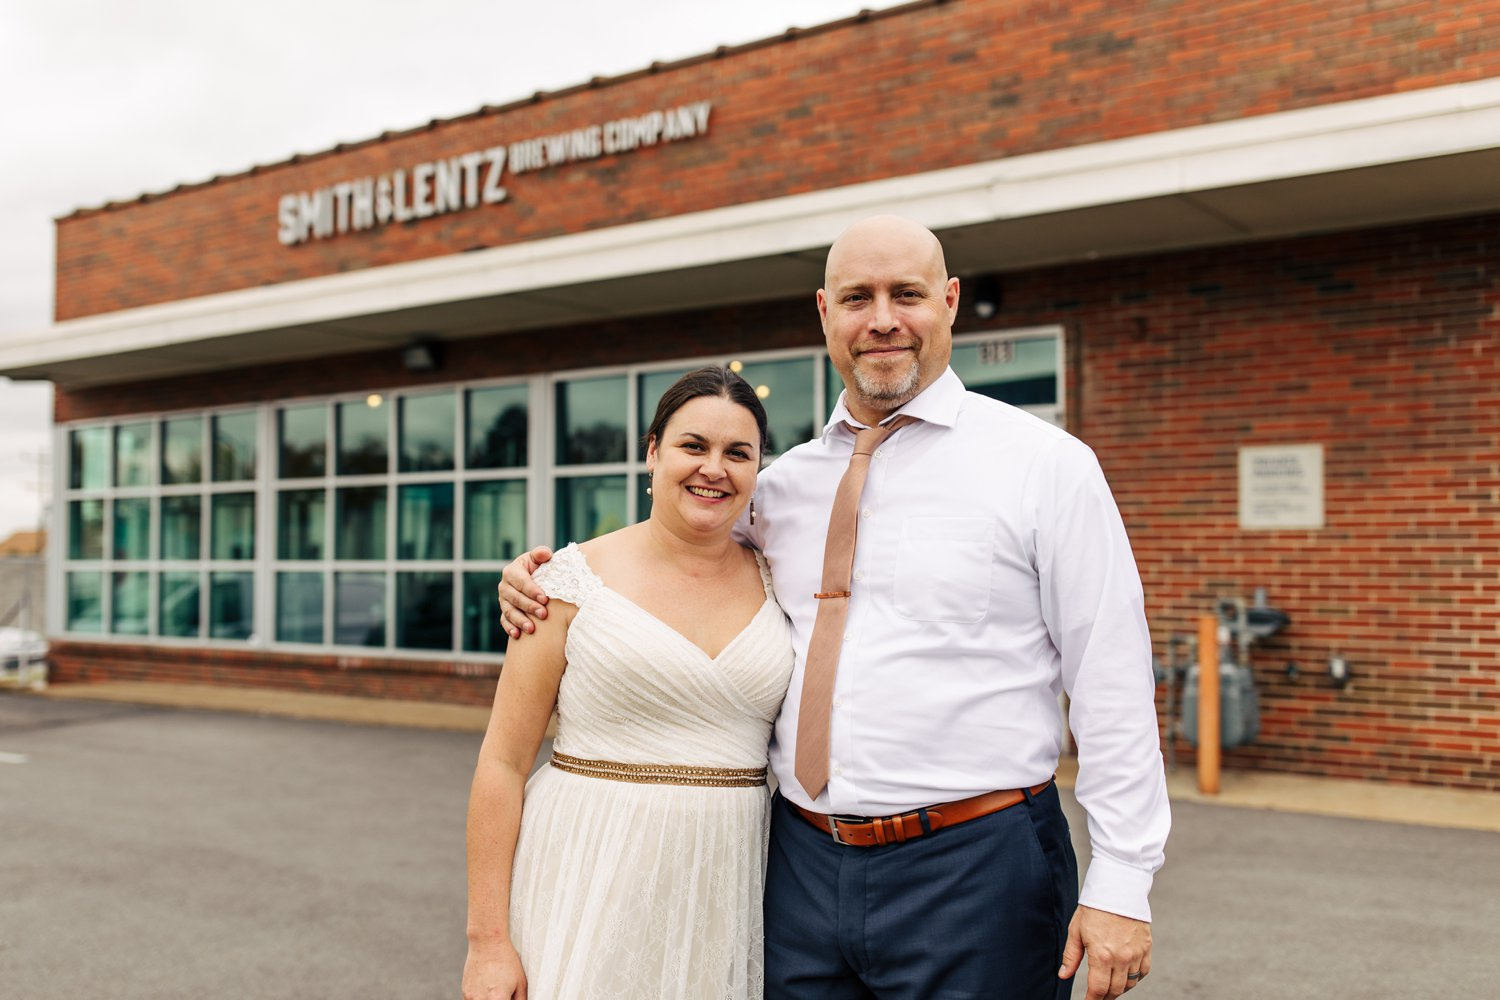 CK-Photo-Nashville-engagement-wedding-photographer-smith-and-lentz